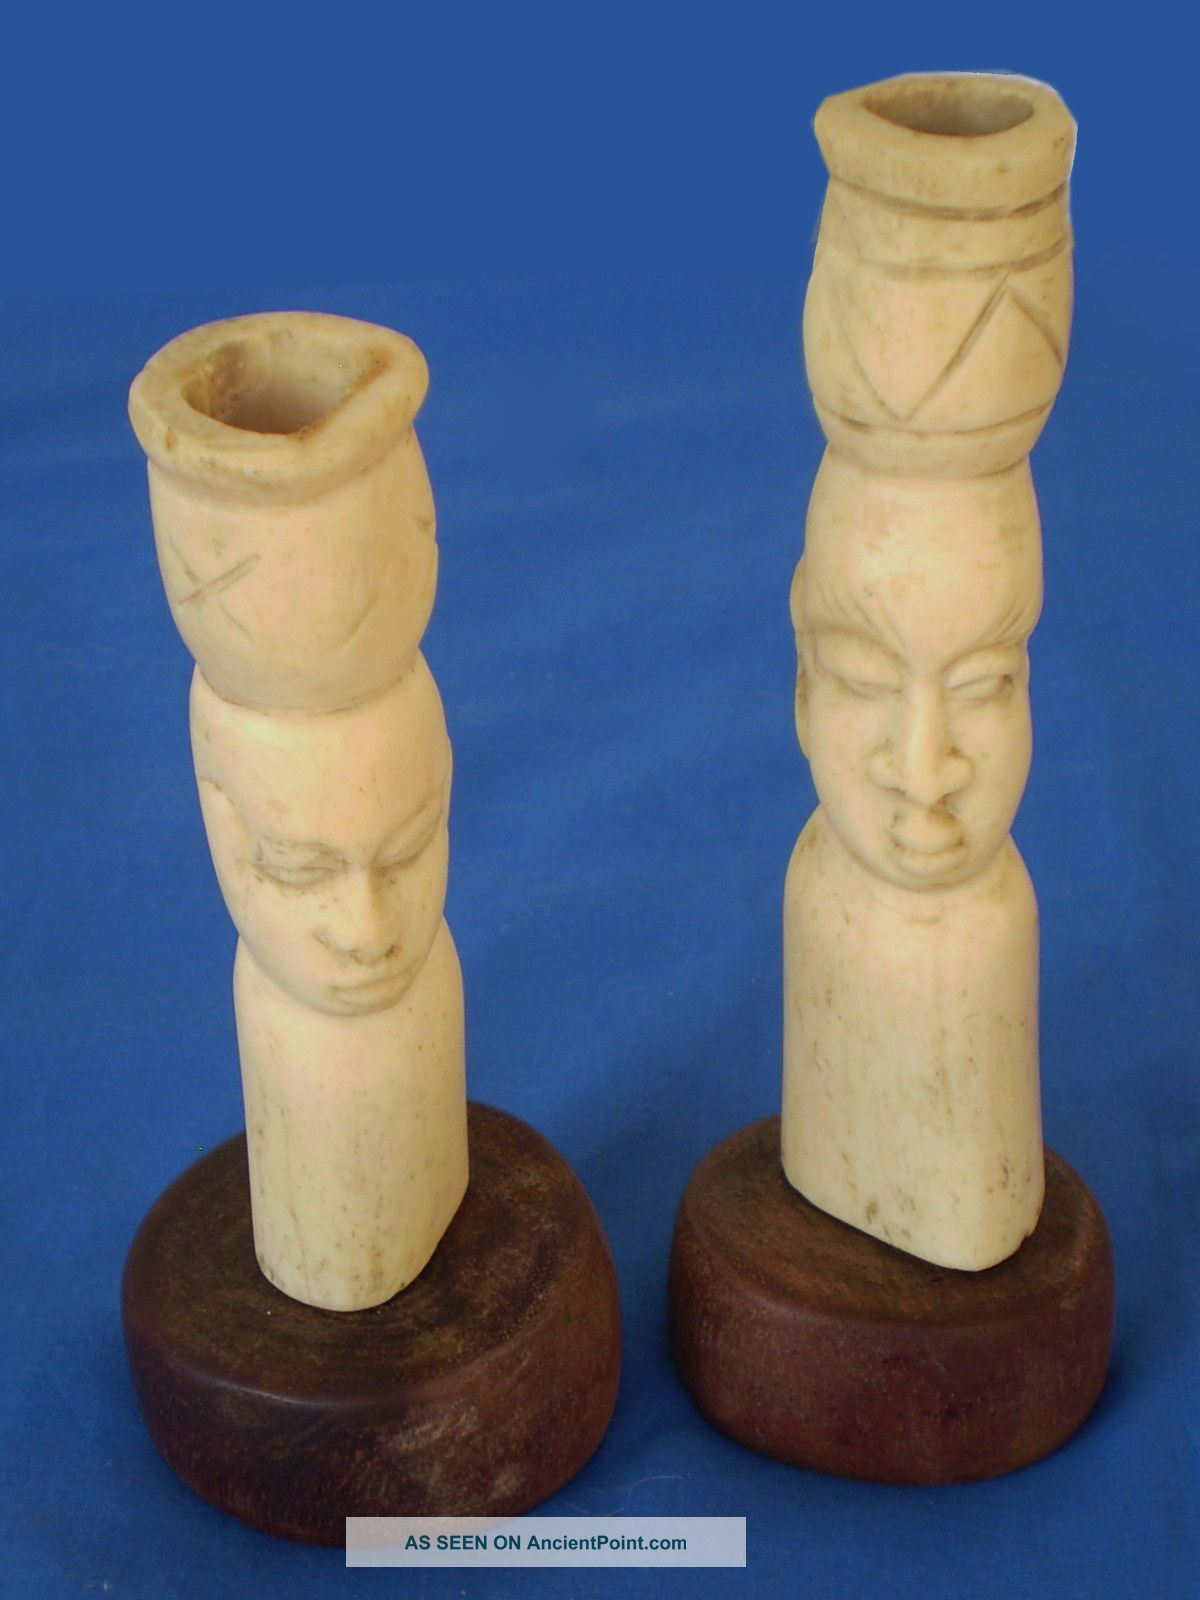 2 Antique African Hand Carved Folk Art Sculptures Heads Statues On Wood Bases Sculptures & Statues photo